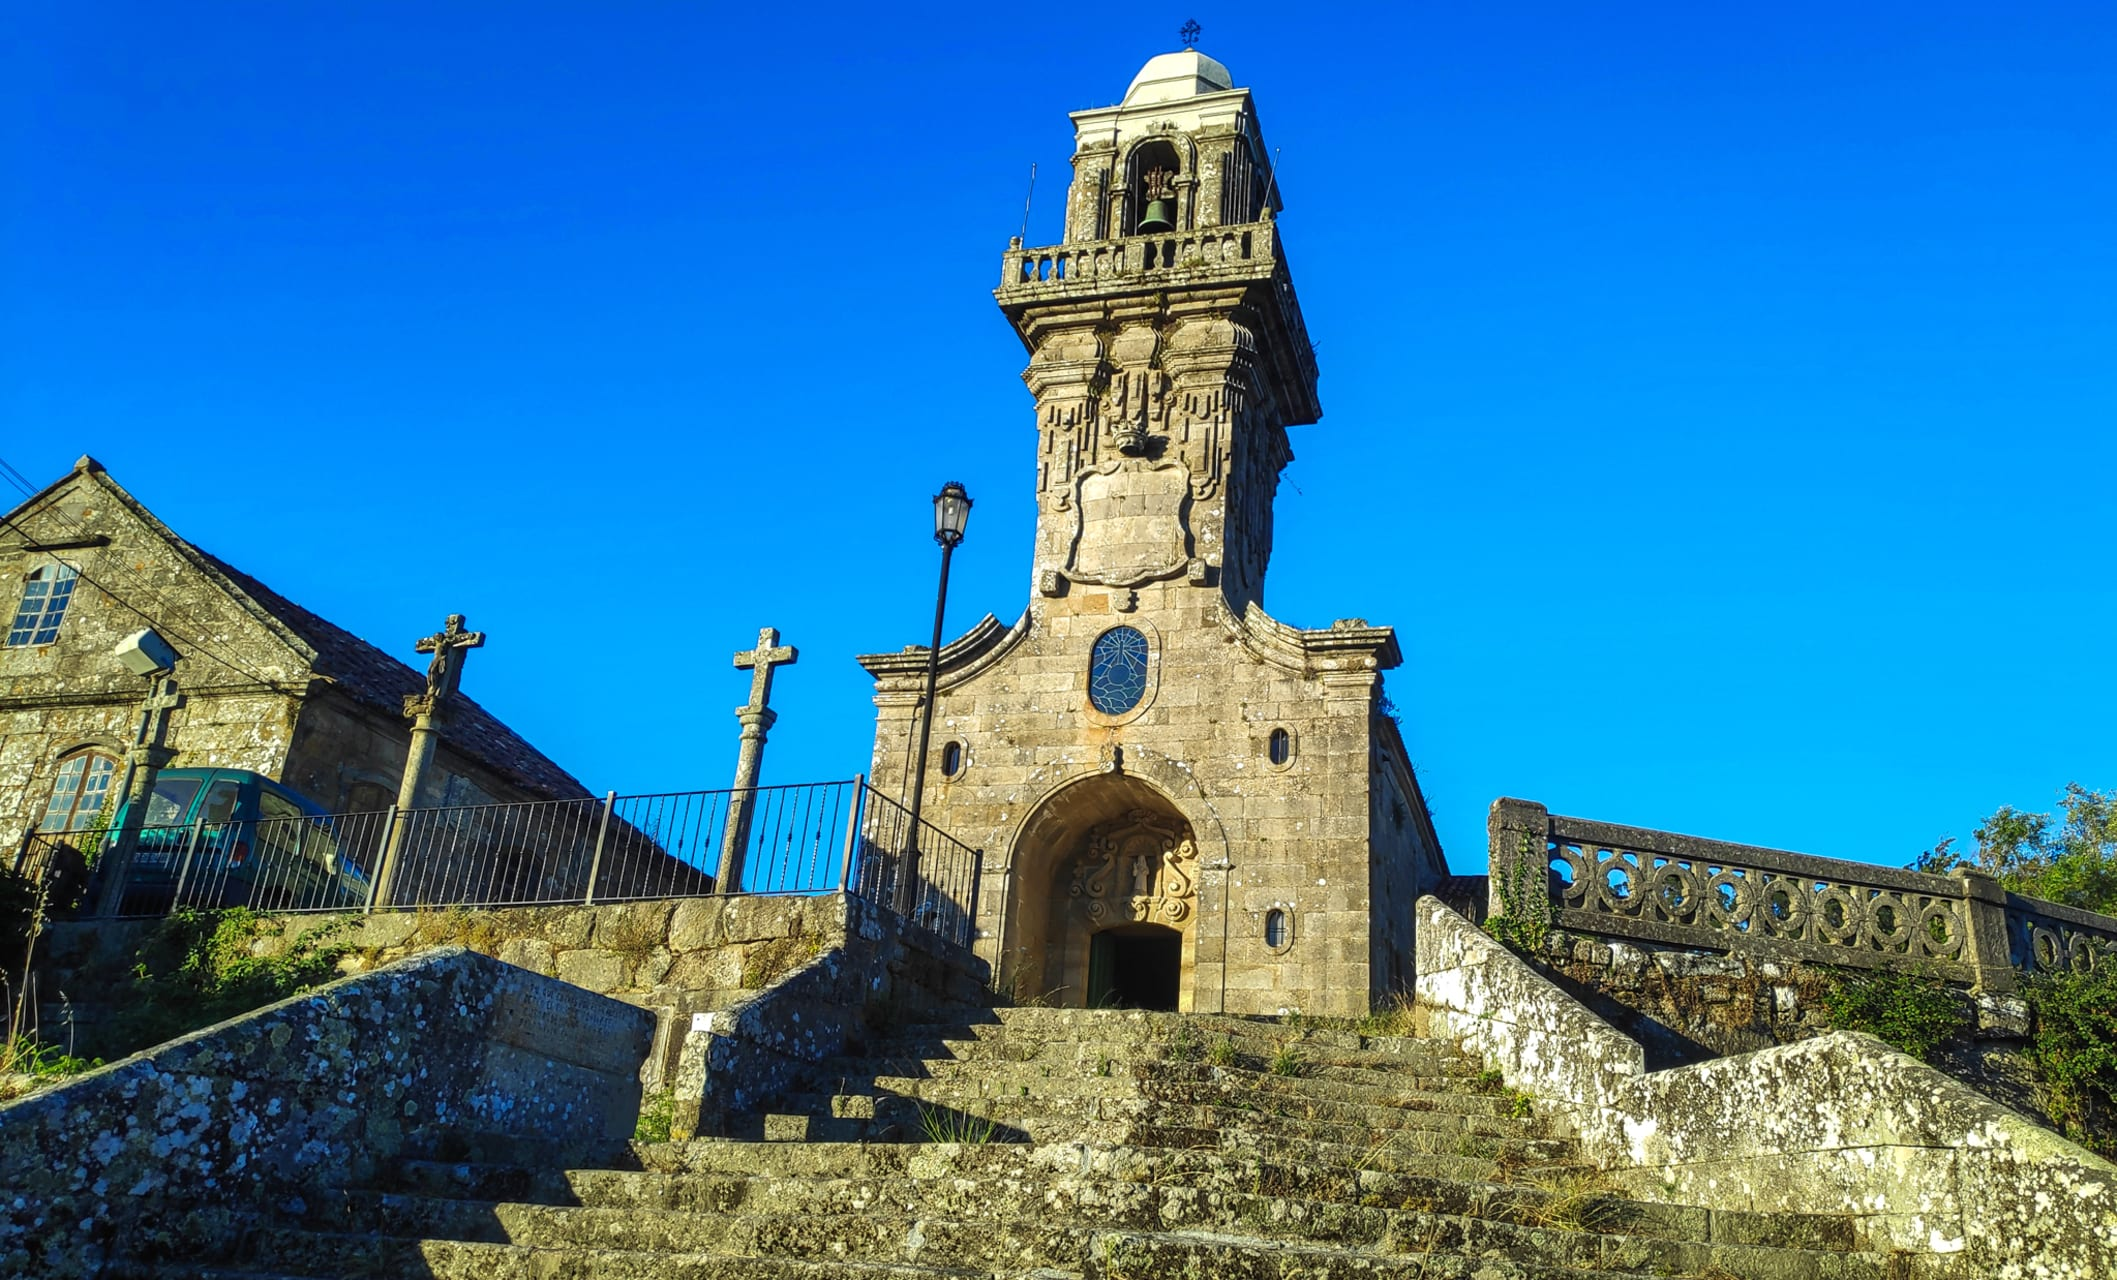 Galicia - The Lost Camino Trail of O Morrazo, Rias Baixas - Part 1: Cornfields, Vineyards & Legends of Witches